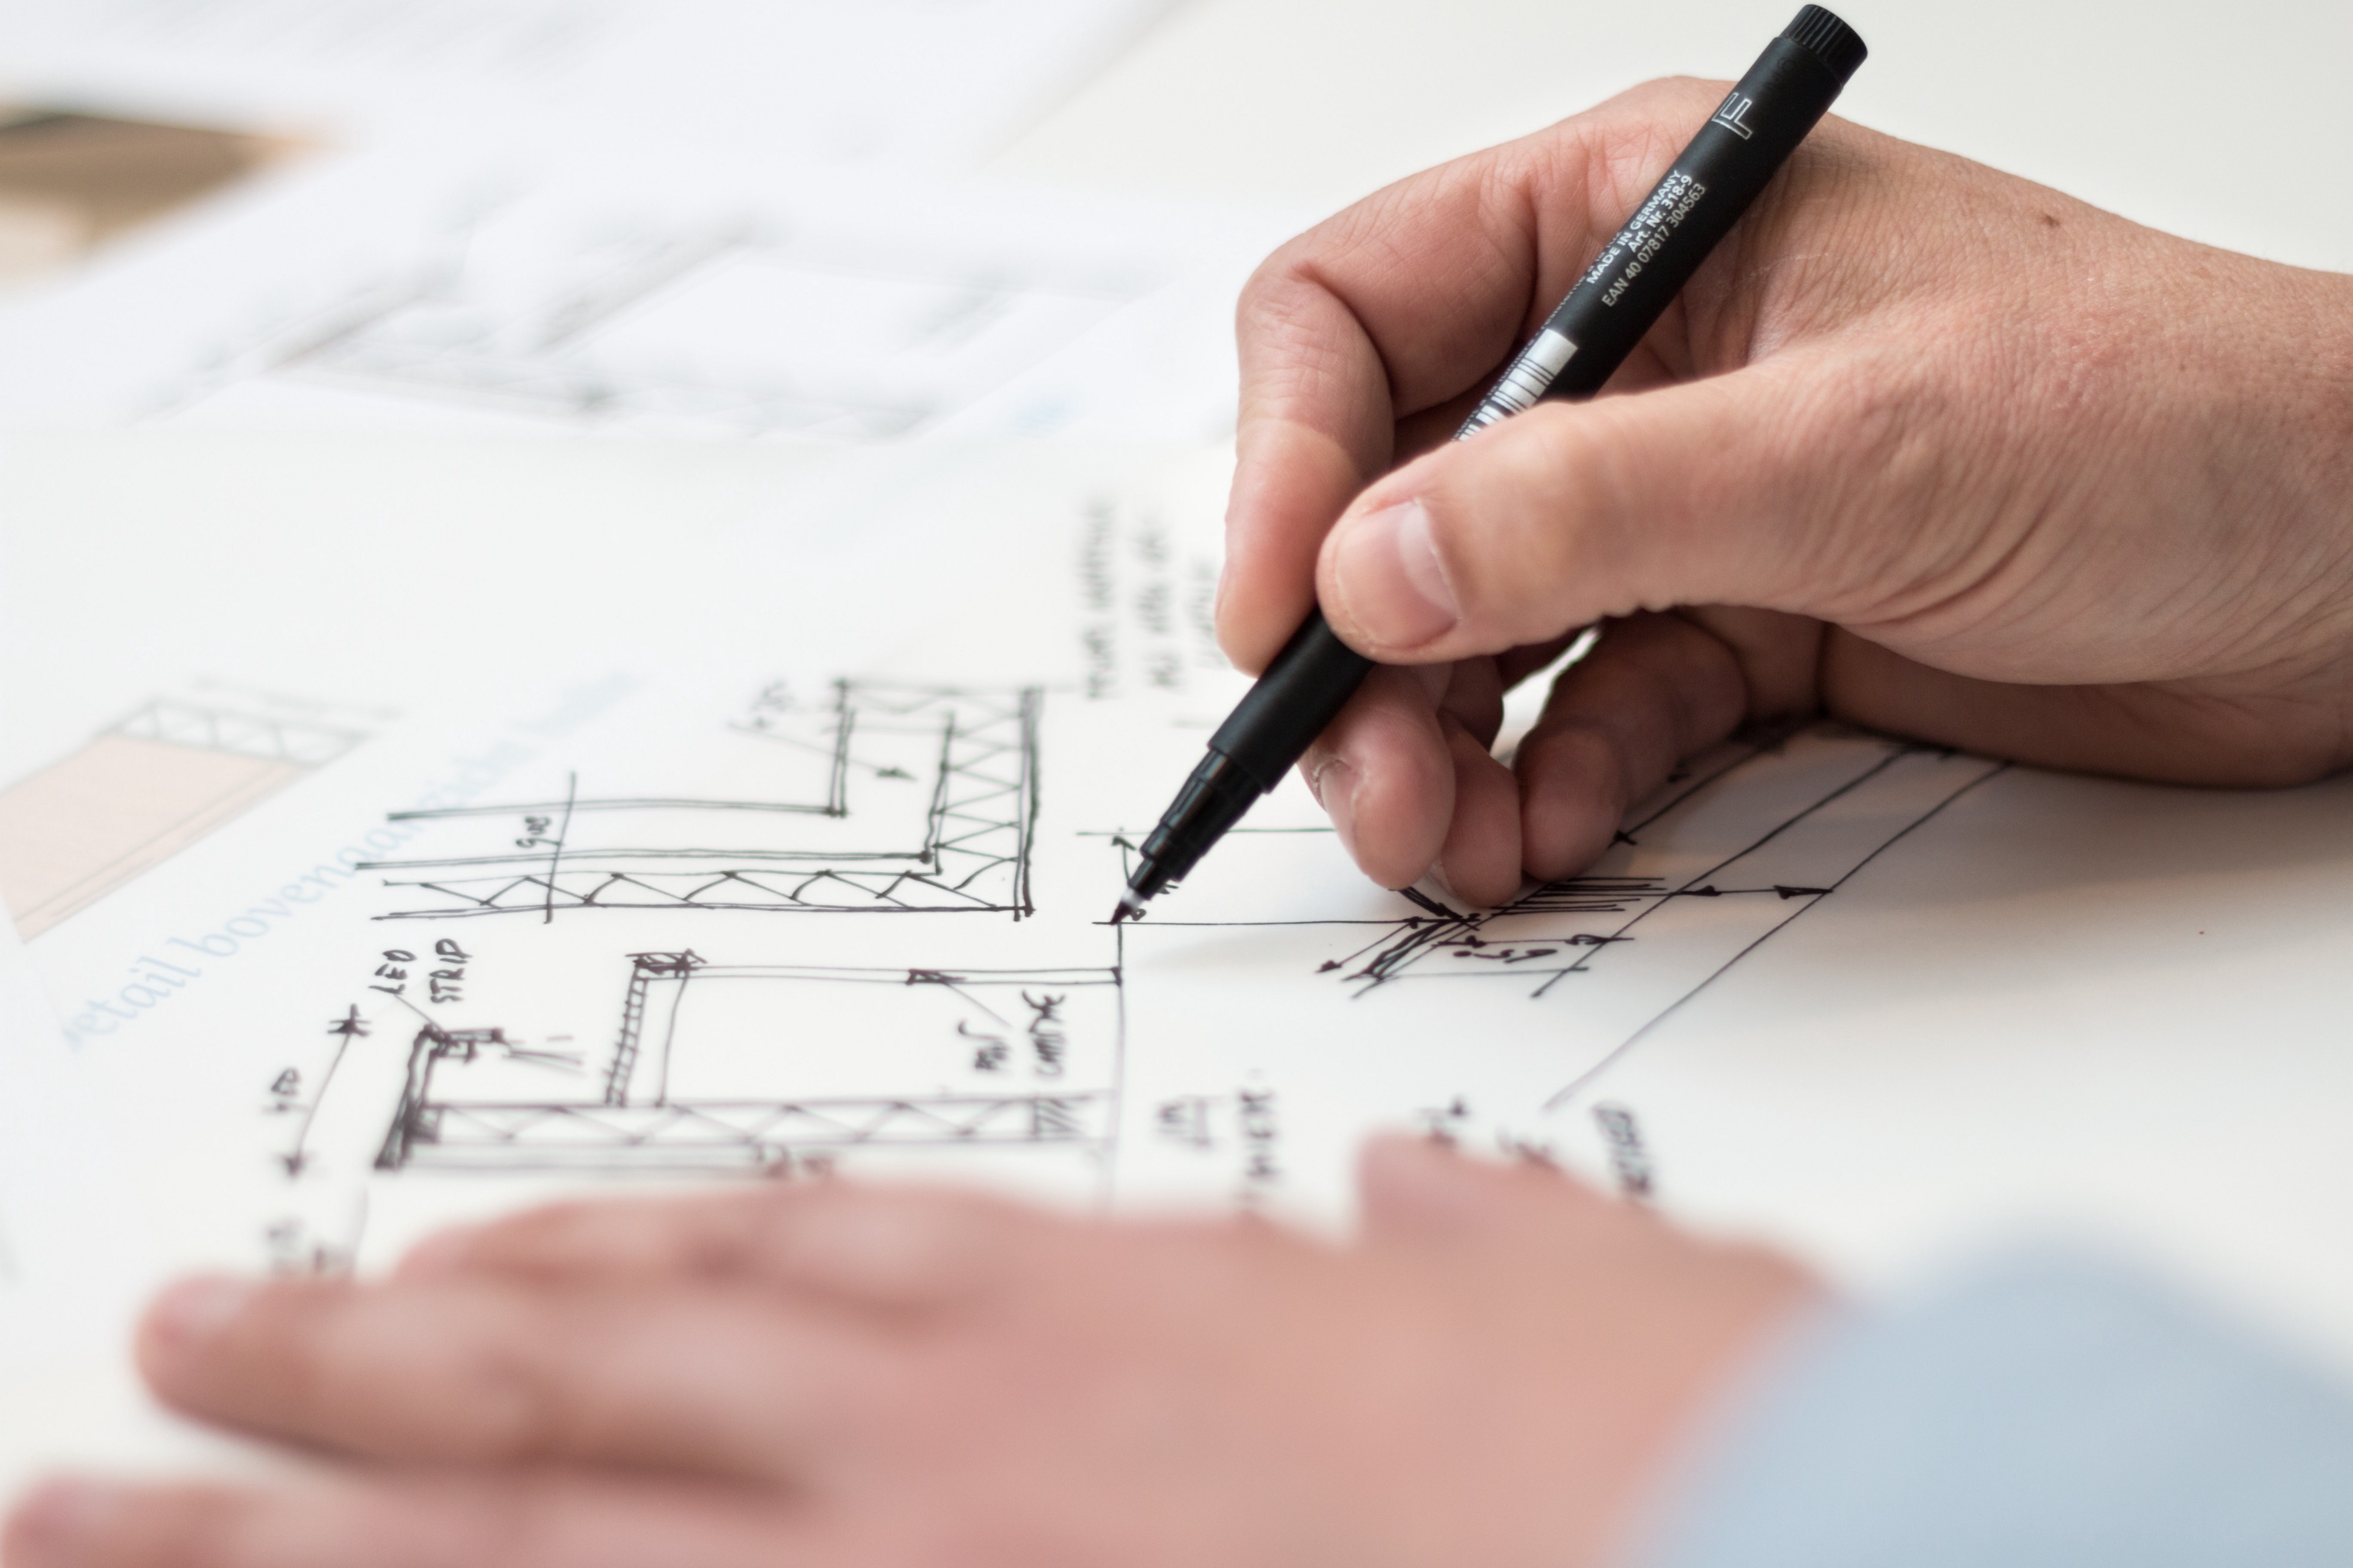 What makes a technical architect? - bhanu.io